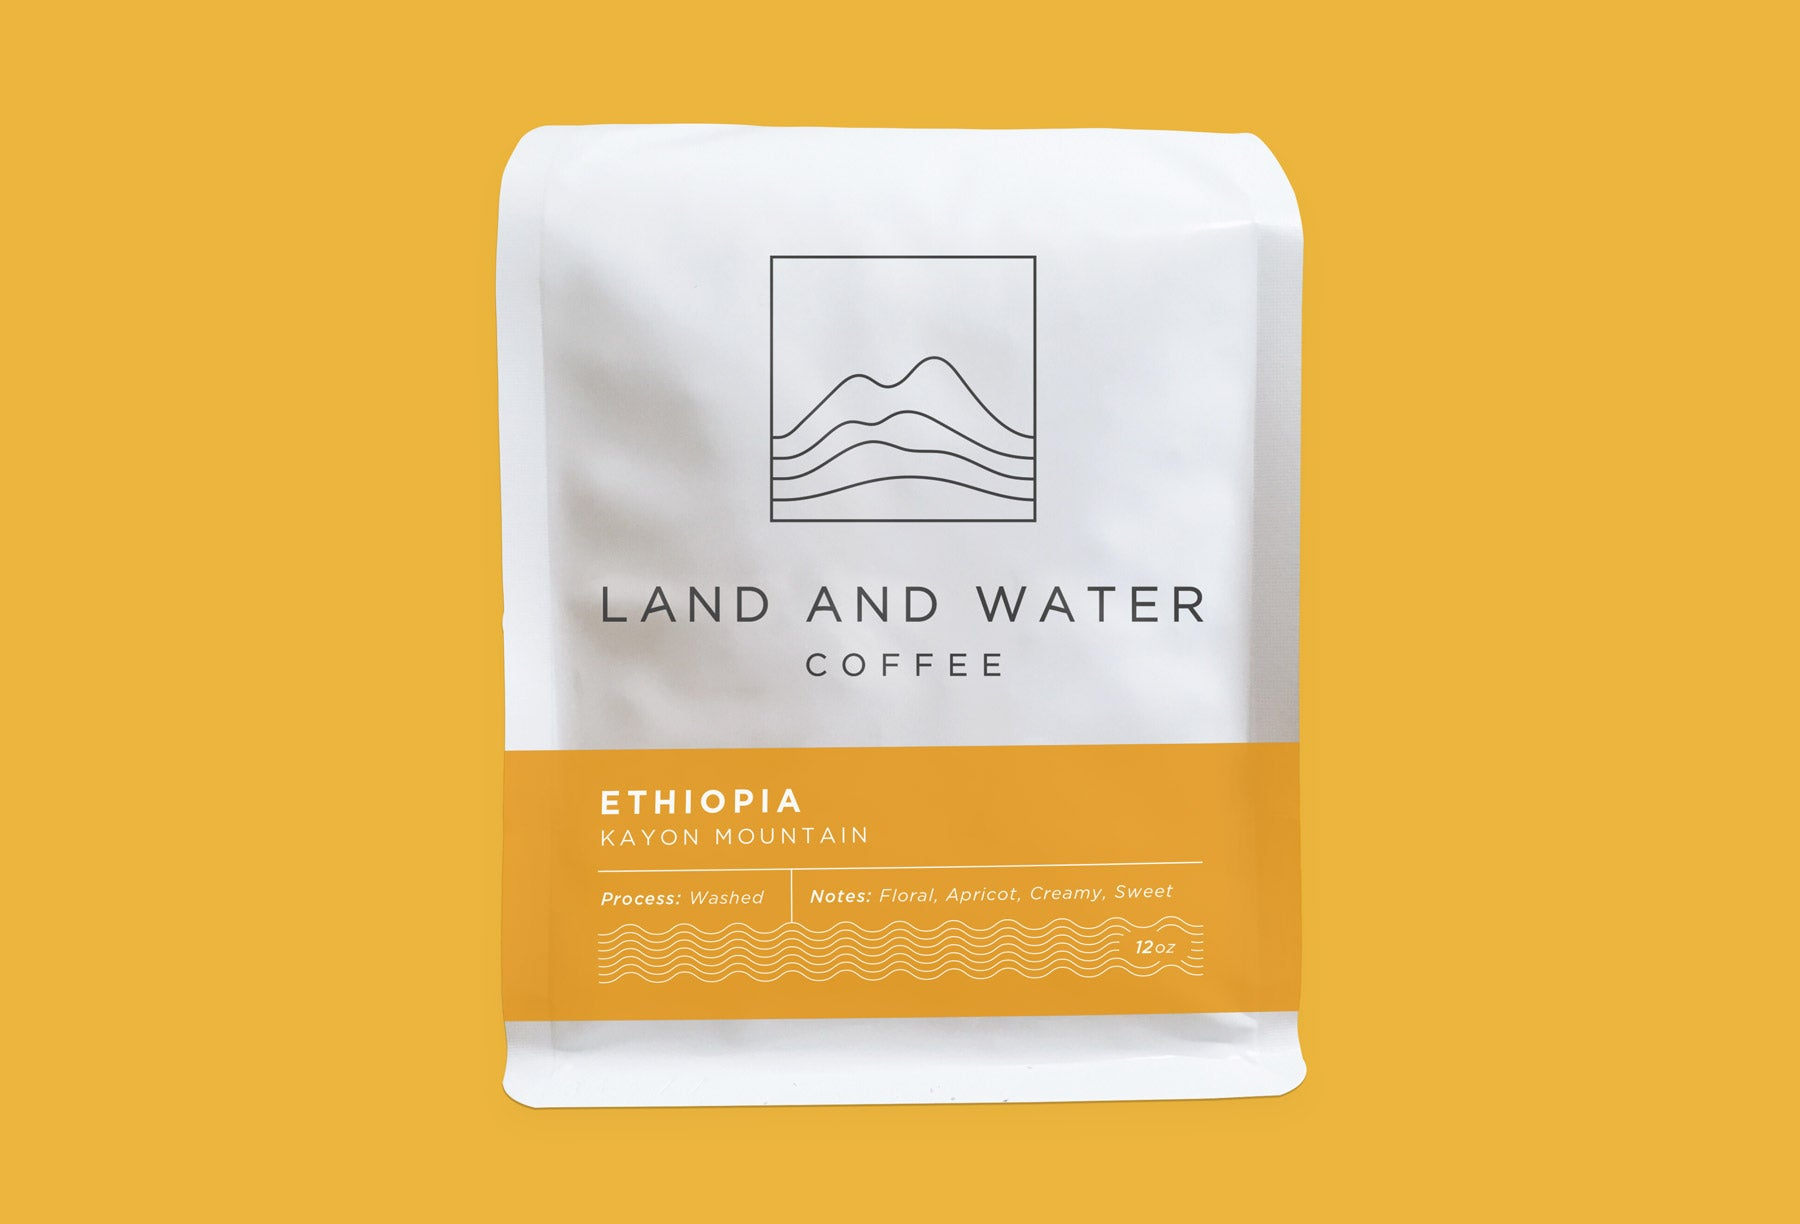 Land and Water Coffee from Kayon Mountain, Guji, Shakiso, Ethiopia white bag with yellow label and yellow background